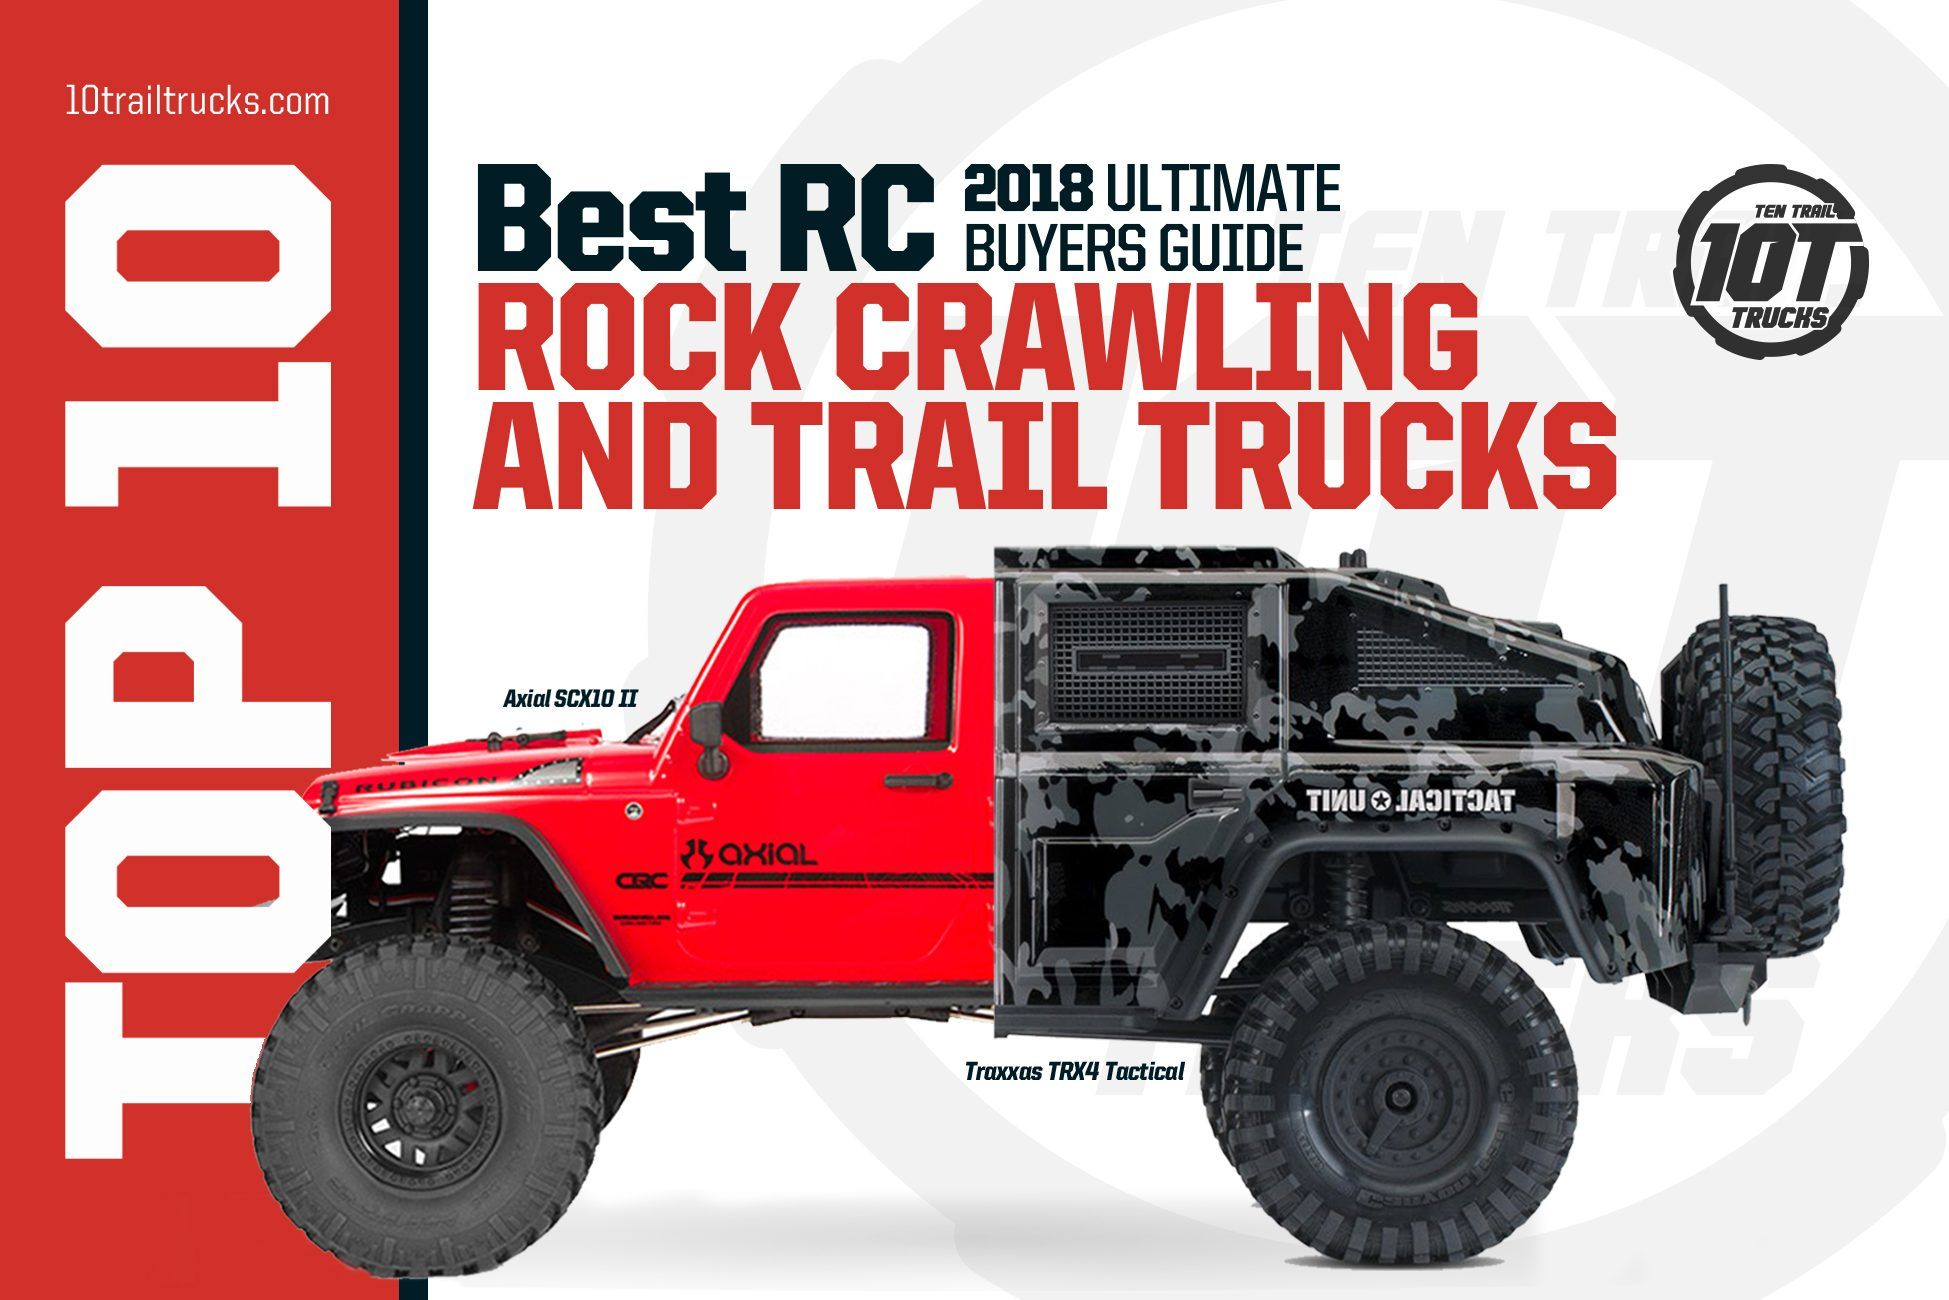 Hey Looking For This Years Best Rc Rock Crawlers Check Out 10trailtrucks All The Top Rc Trail Trucks Are Covered Rc Rock Crawler Rock Crawler Crawlers